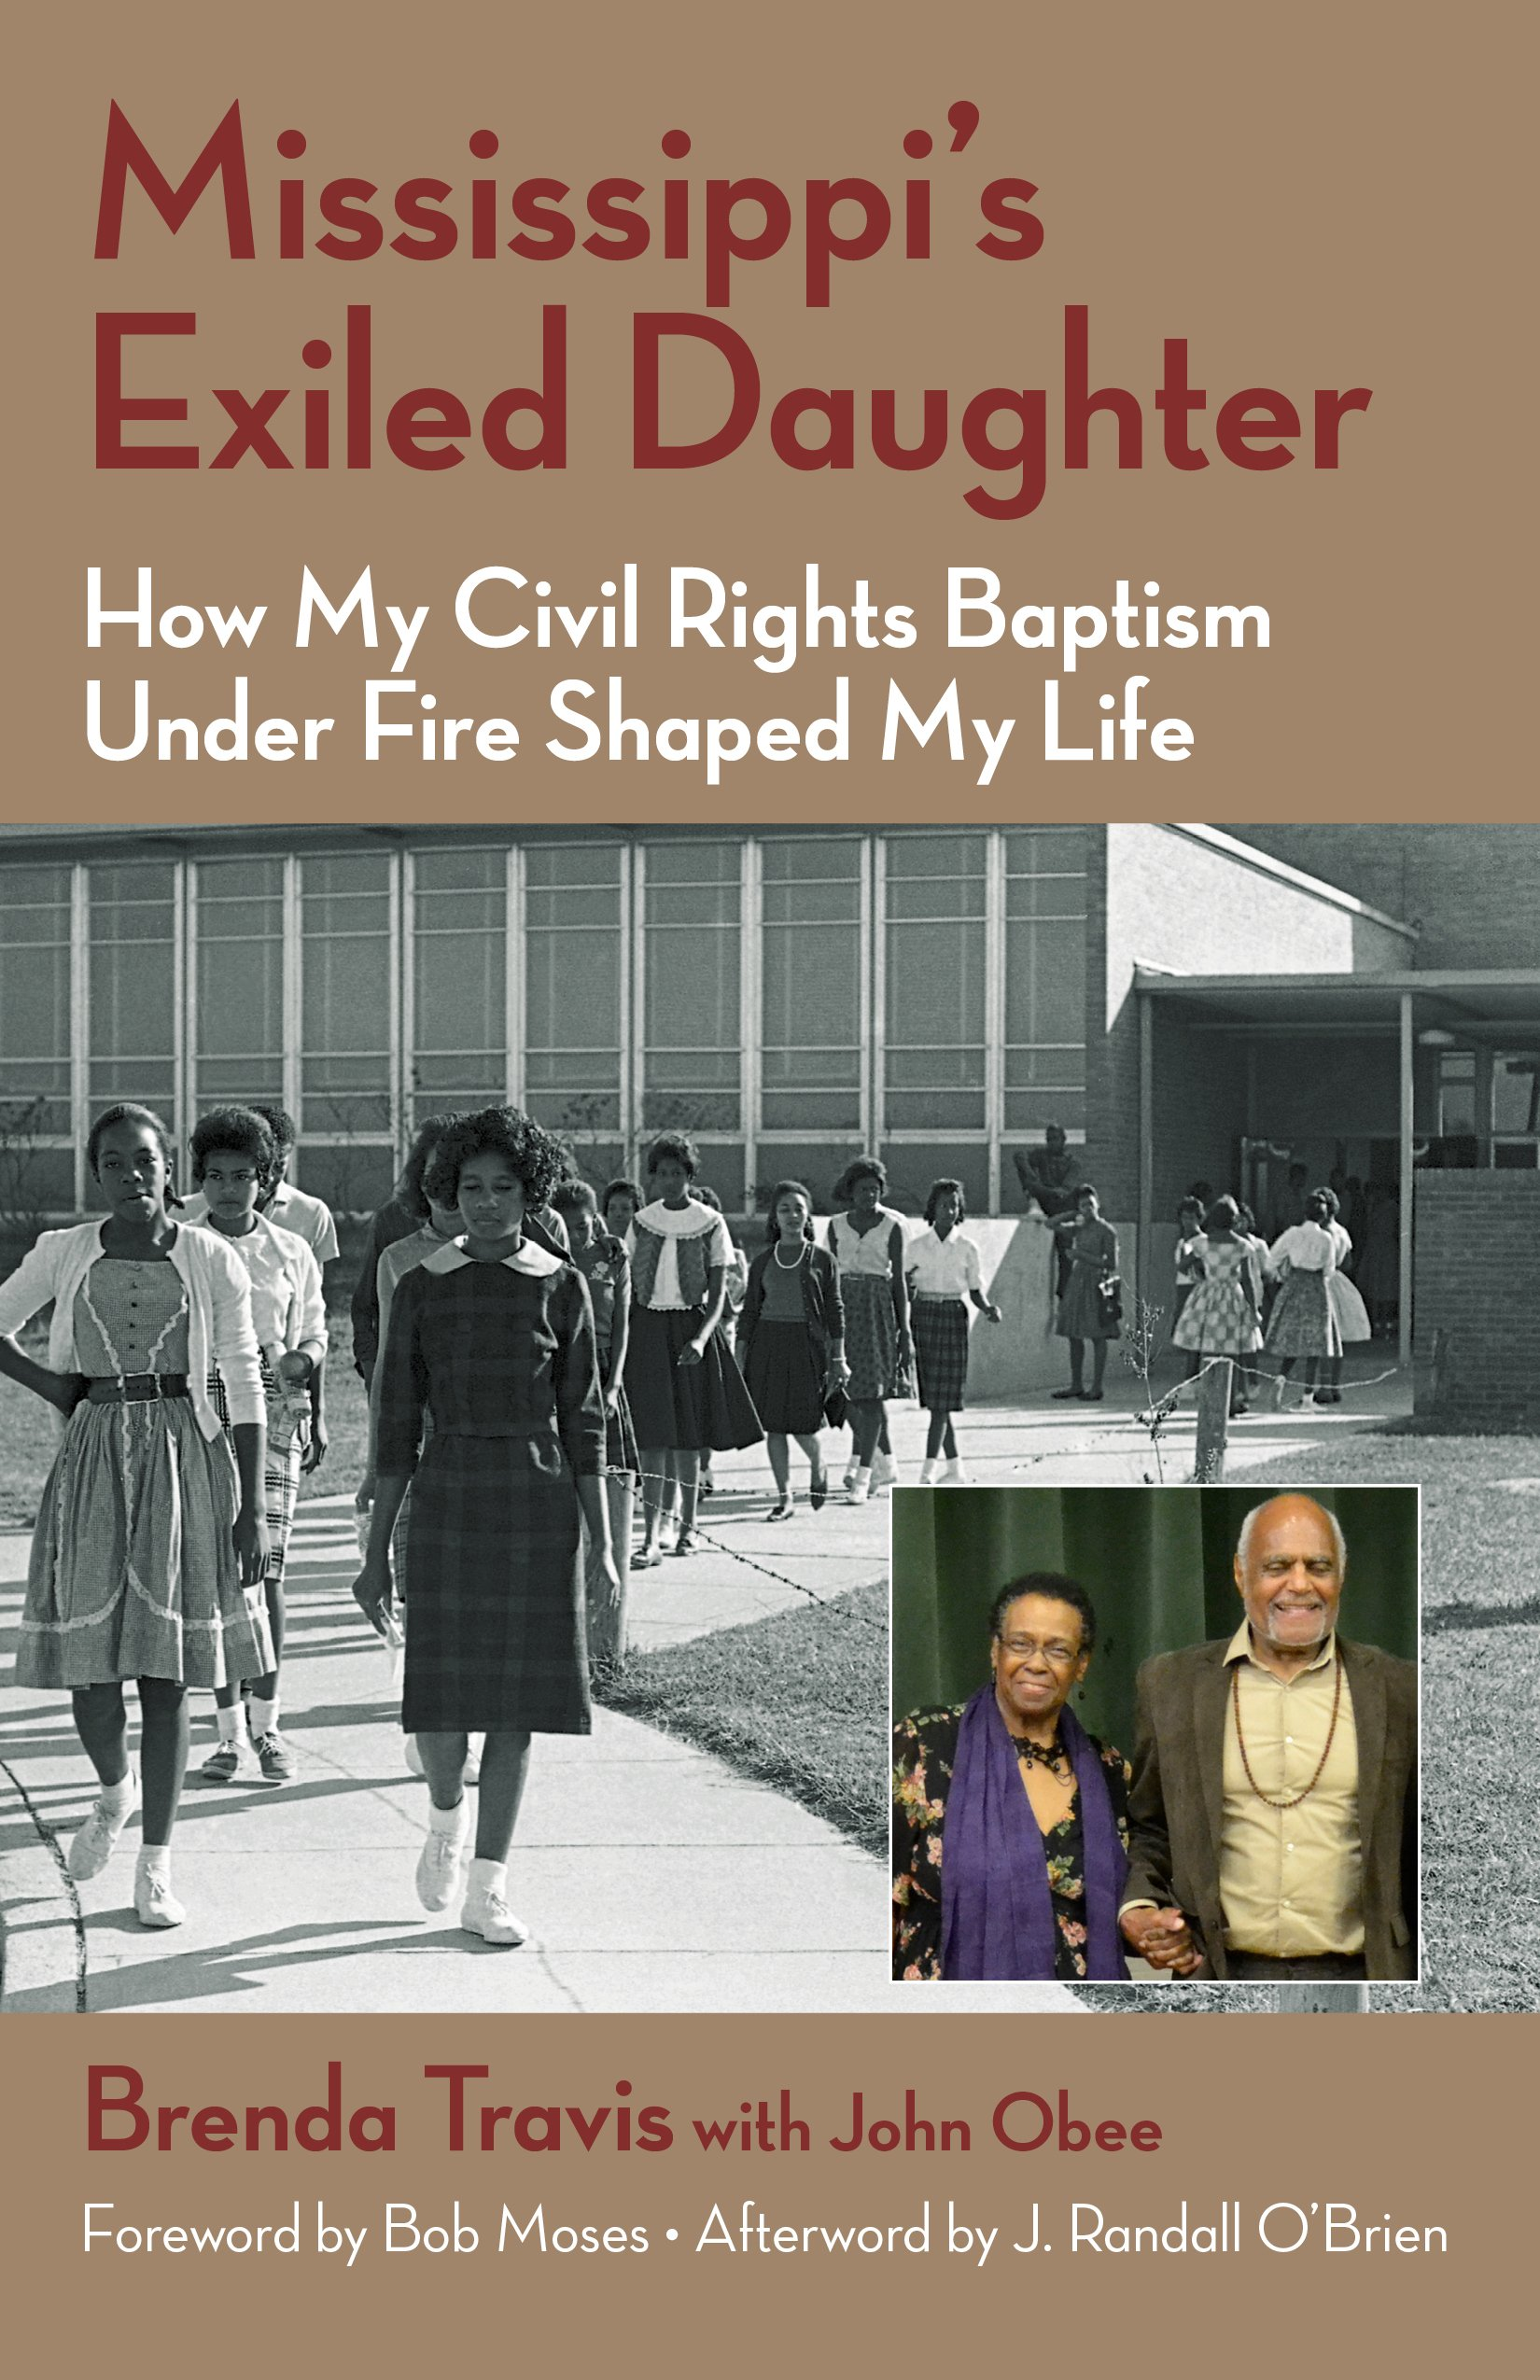 Mississippi's Exiled Daughter: How My Civil Rights Baptism Under Fire Shaped My Life